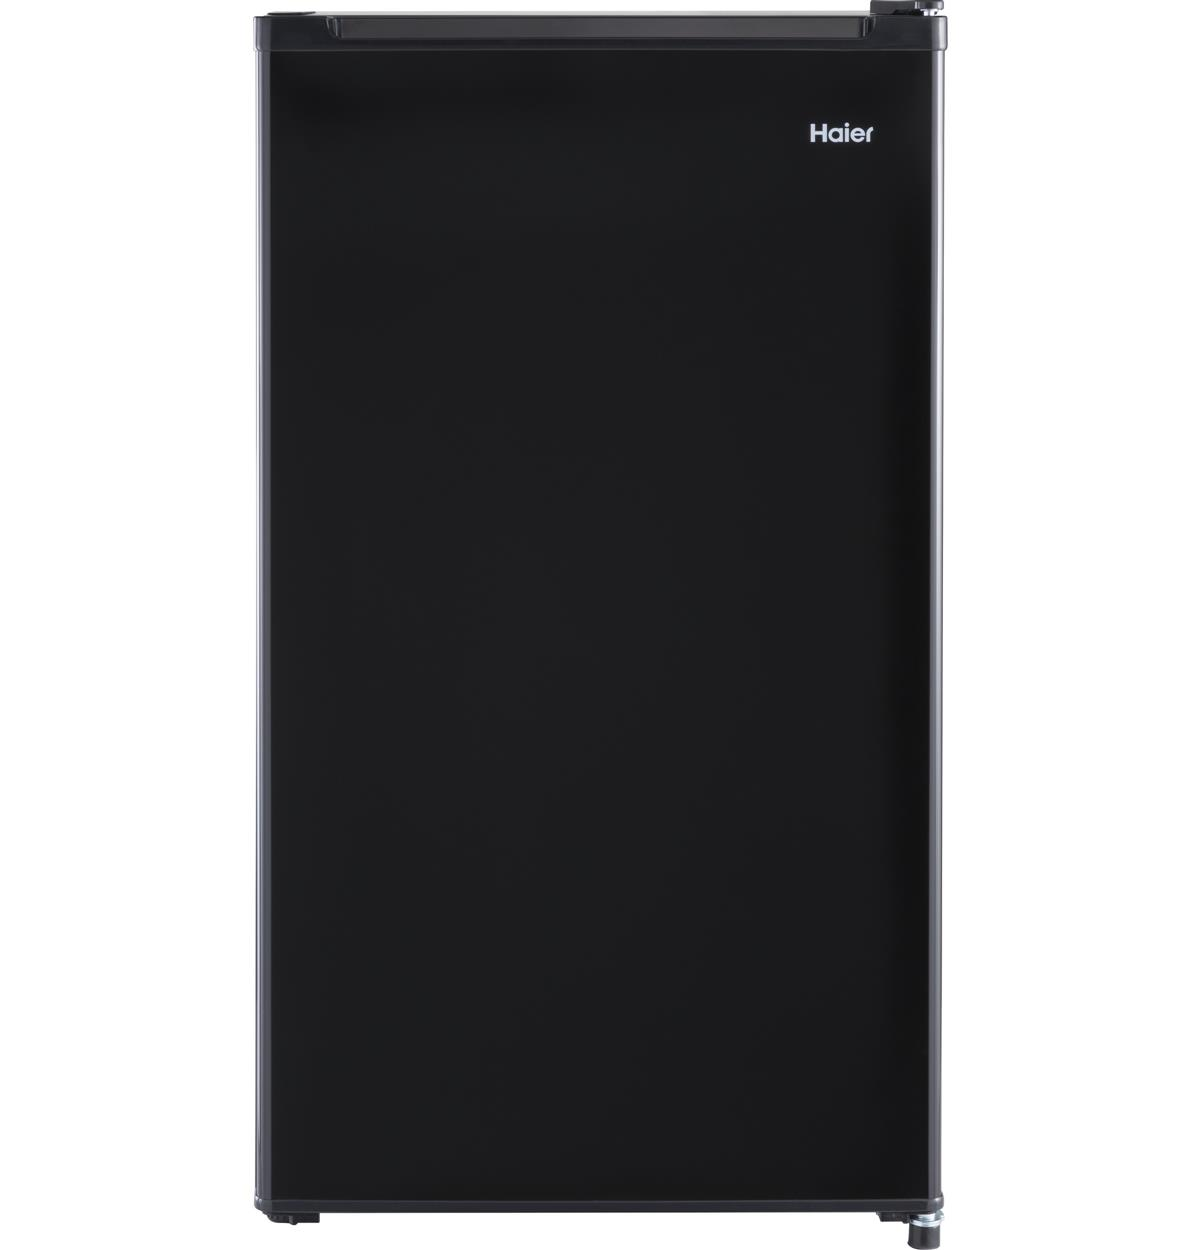 Black Compact HC33SW20RB Un-installed/free-standing